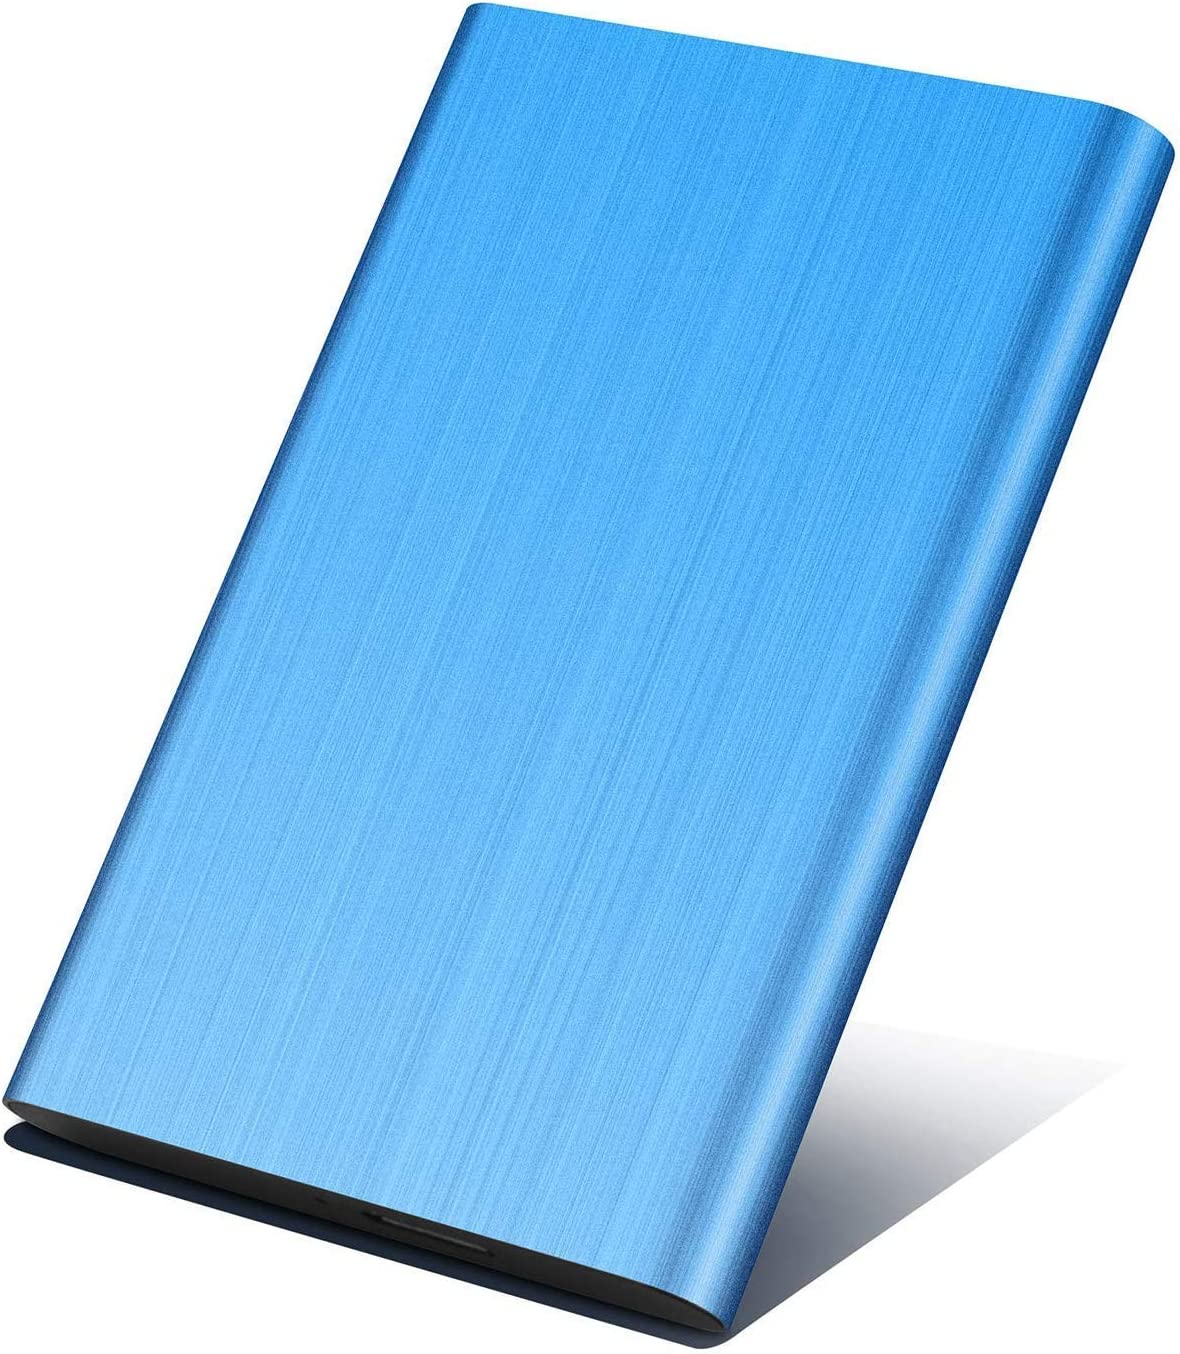 Portable online shopping External Hard Cash special price Drive Drive-HY01 Slim Ultra